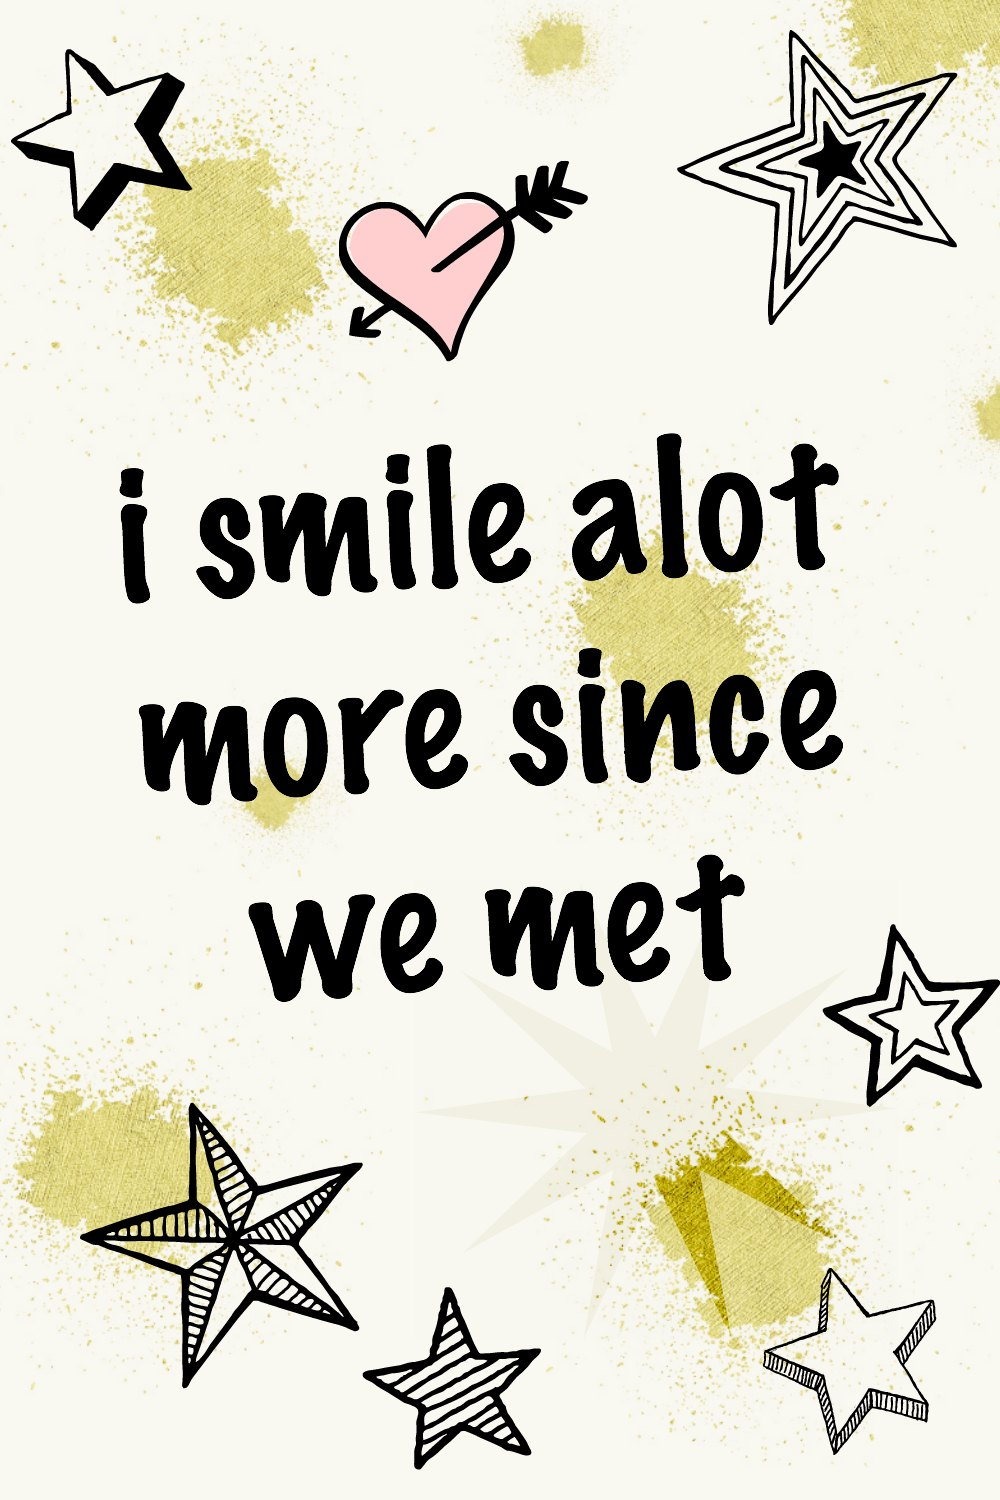 Quotes about happiness and smiling #happyquotes #quotes